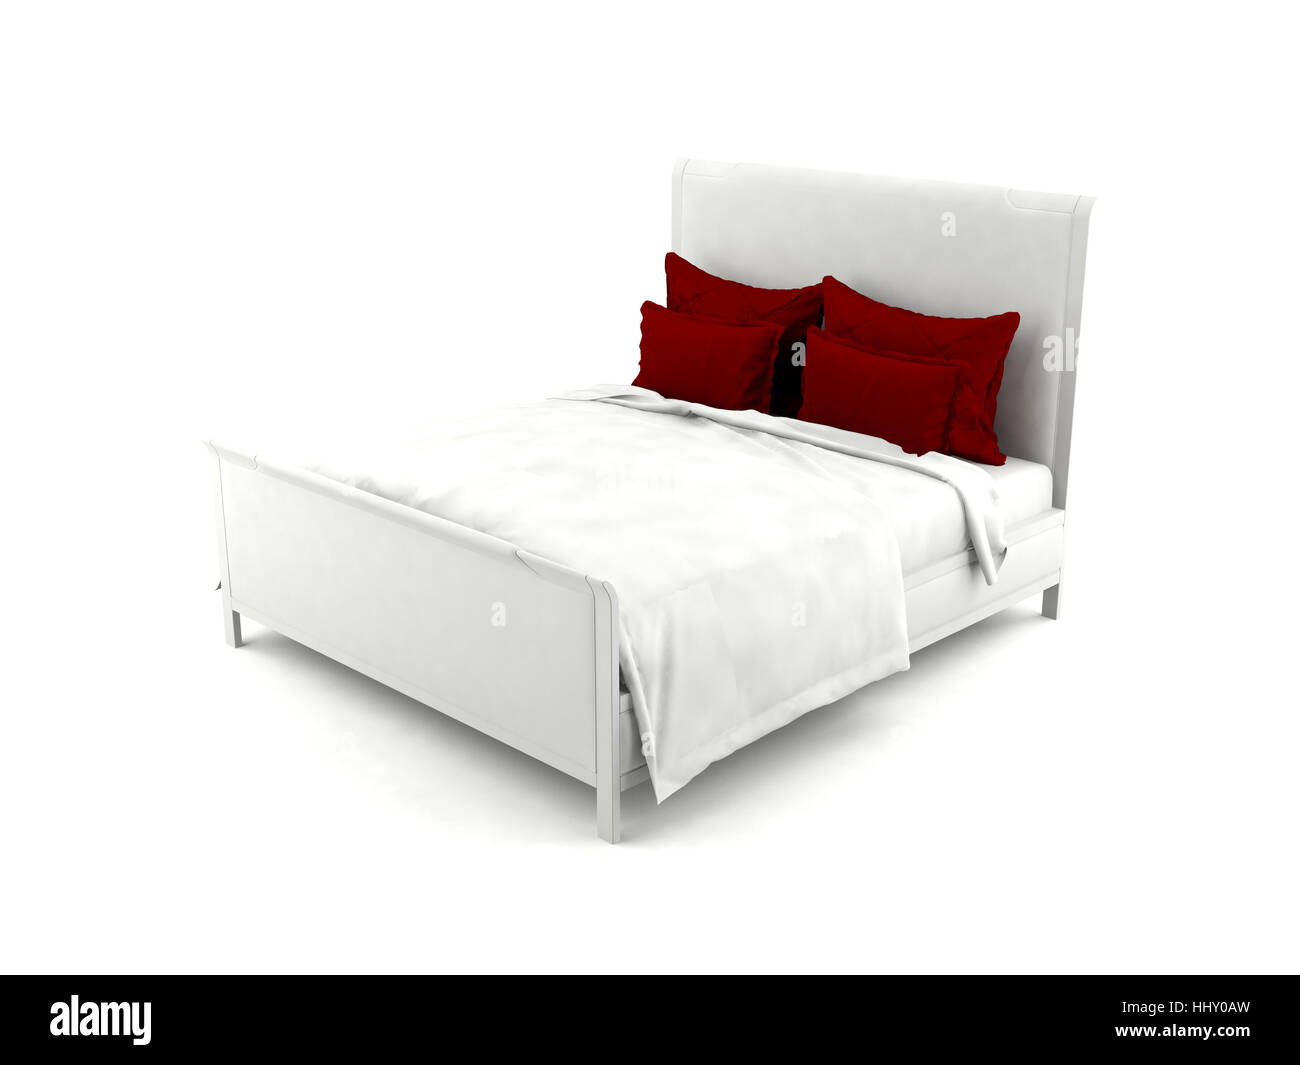 White bed with red pillows - Stock Image